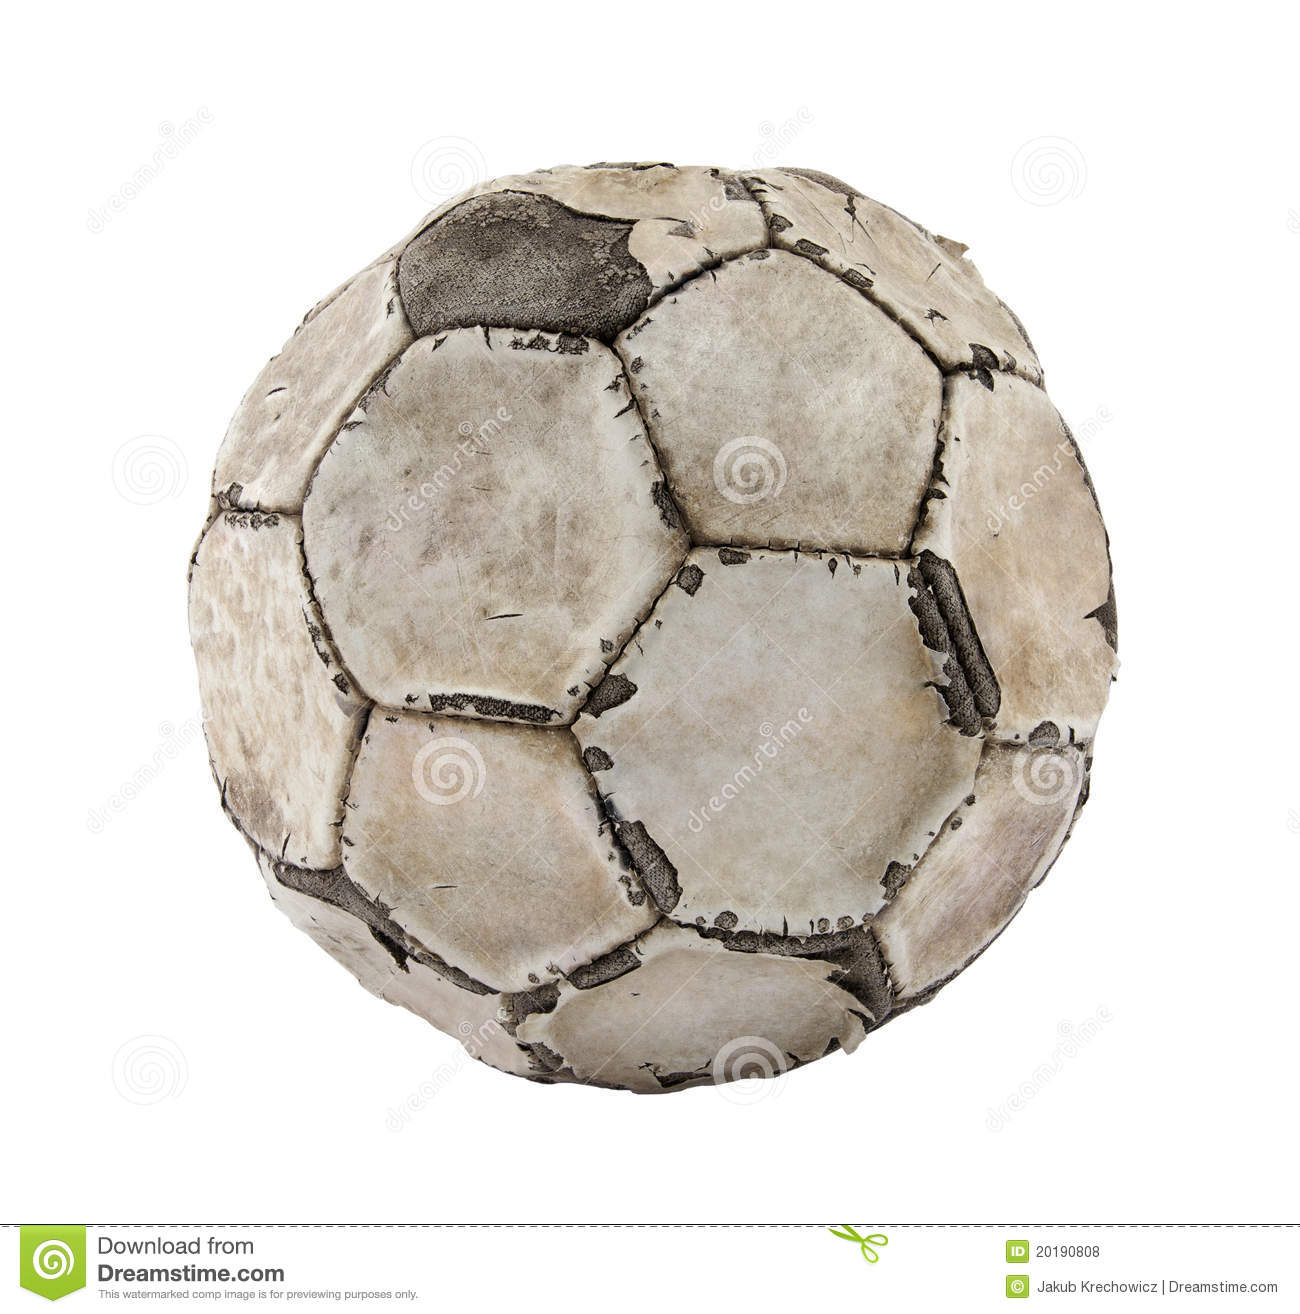 Old soccer ball stock photo. Image of ball, sphere, rough ...